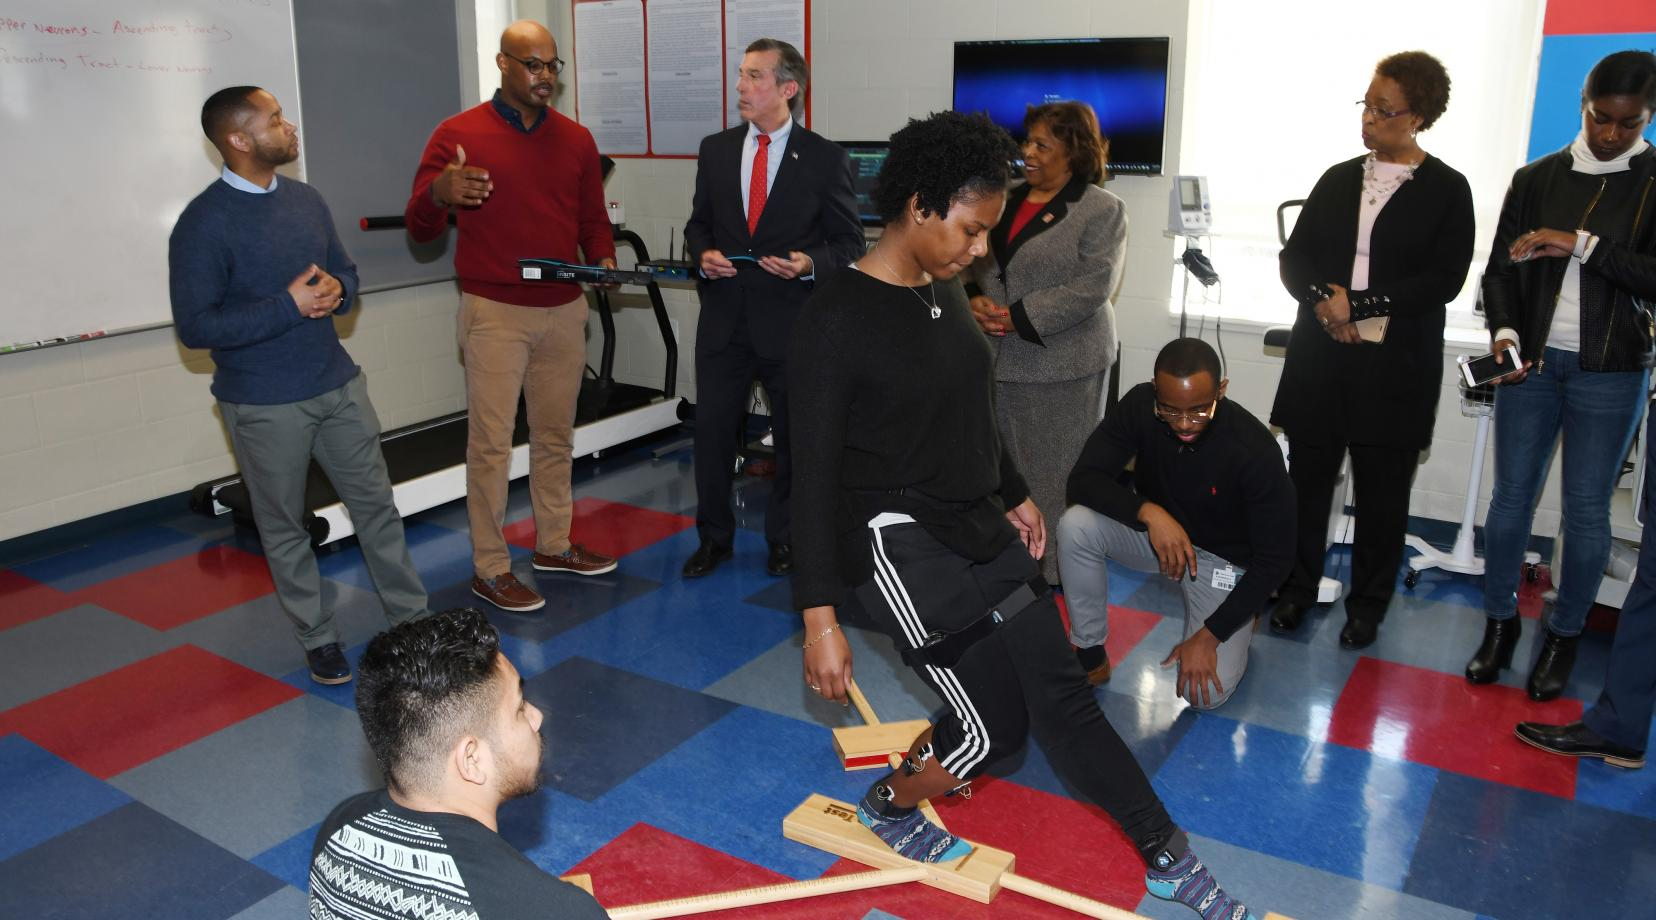 A kinesiology student does movements while electrodes measure electrical activity in her ankle muscles. This predictive injury analysis was part of a Feb. 5 demonstration presented (background l-r) by Dr. Chris Mason and Dr. Von Homer to Gov. John Carney, University President Wilma Mishoe and Dr. Marsha Horton, dean of the College of Health and Behavioral Sciences.